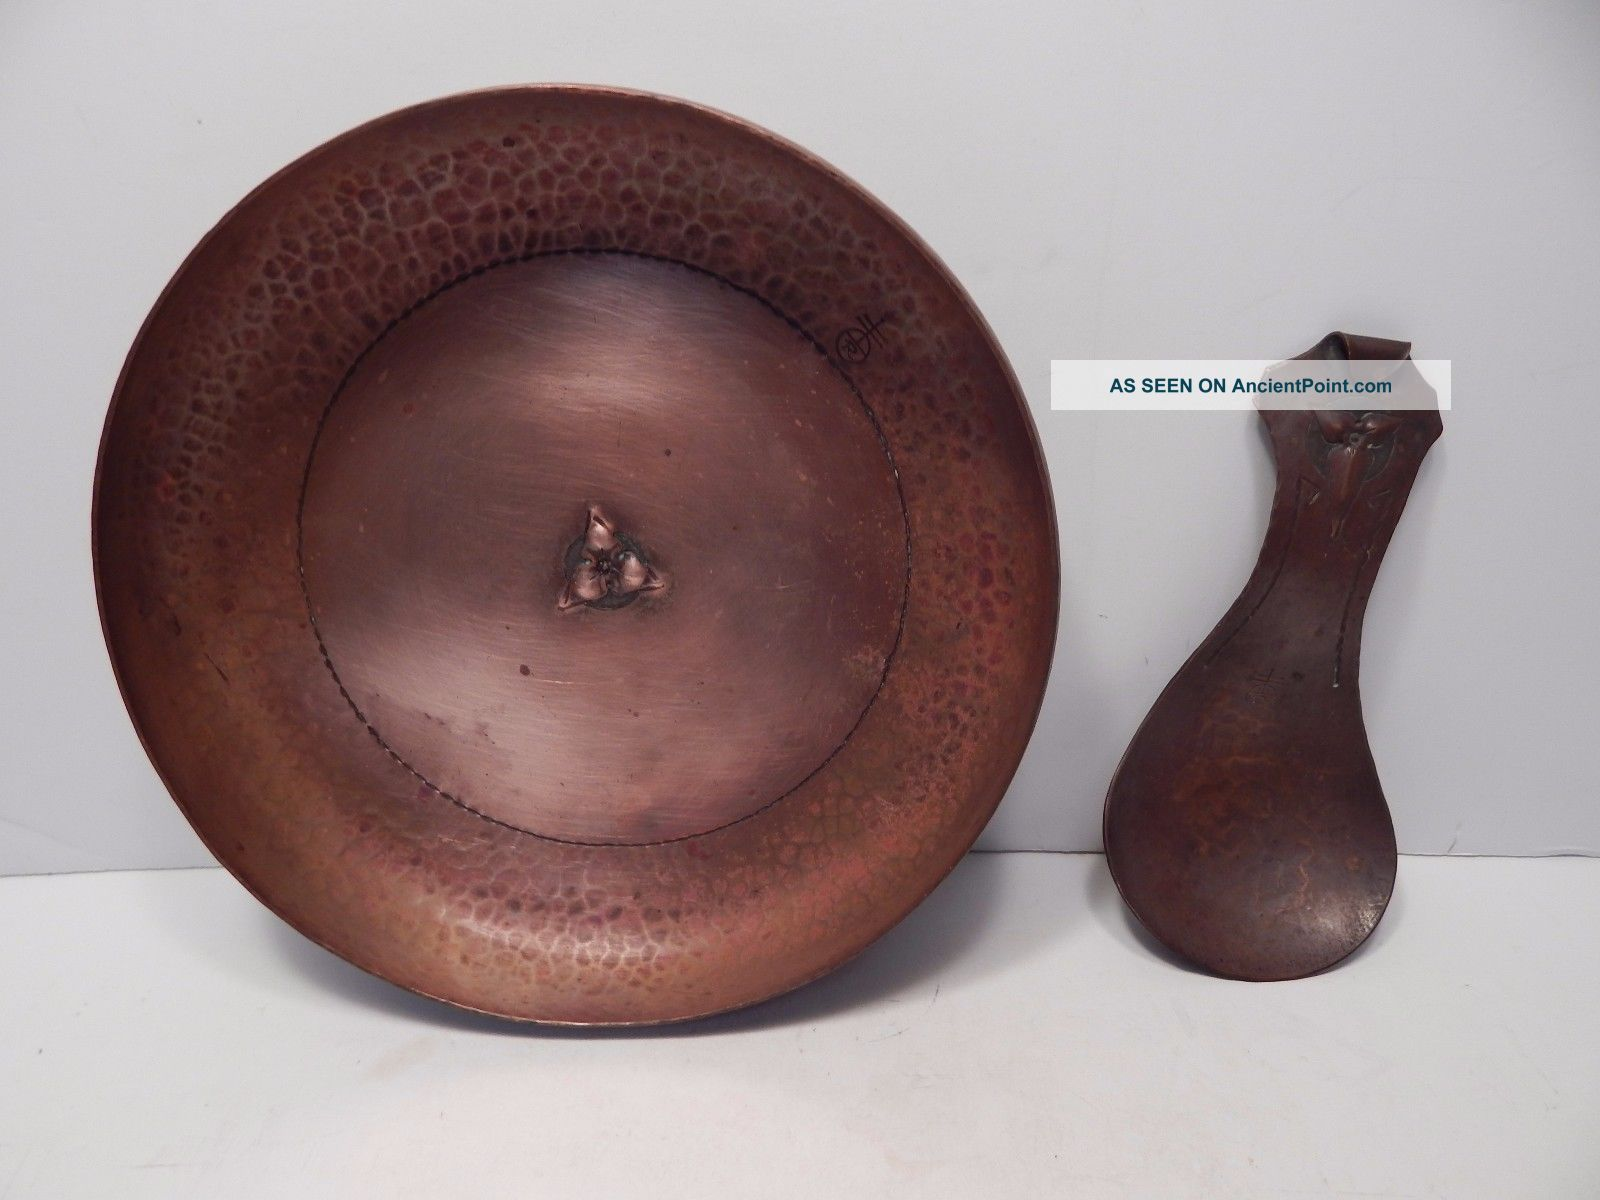 Large Roycroft Hand Hammered Copper Serving Bowl & Spoon W/ Floral Design Arts & Crafts Movement photo